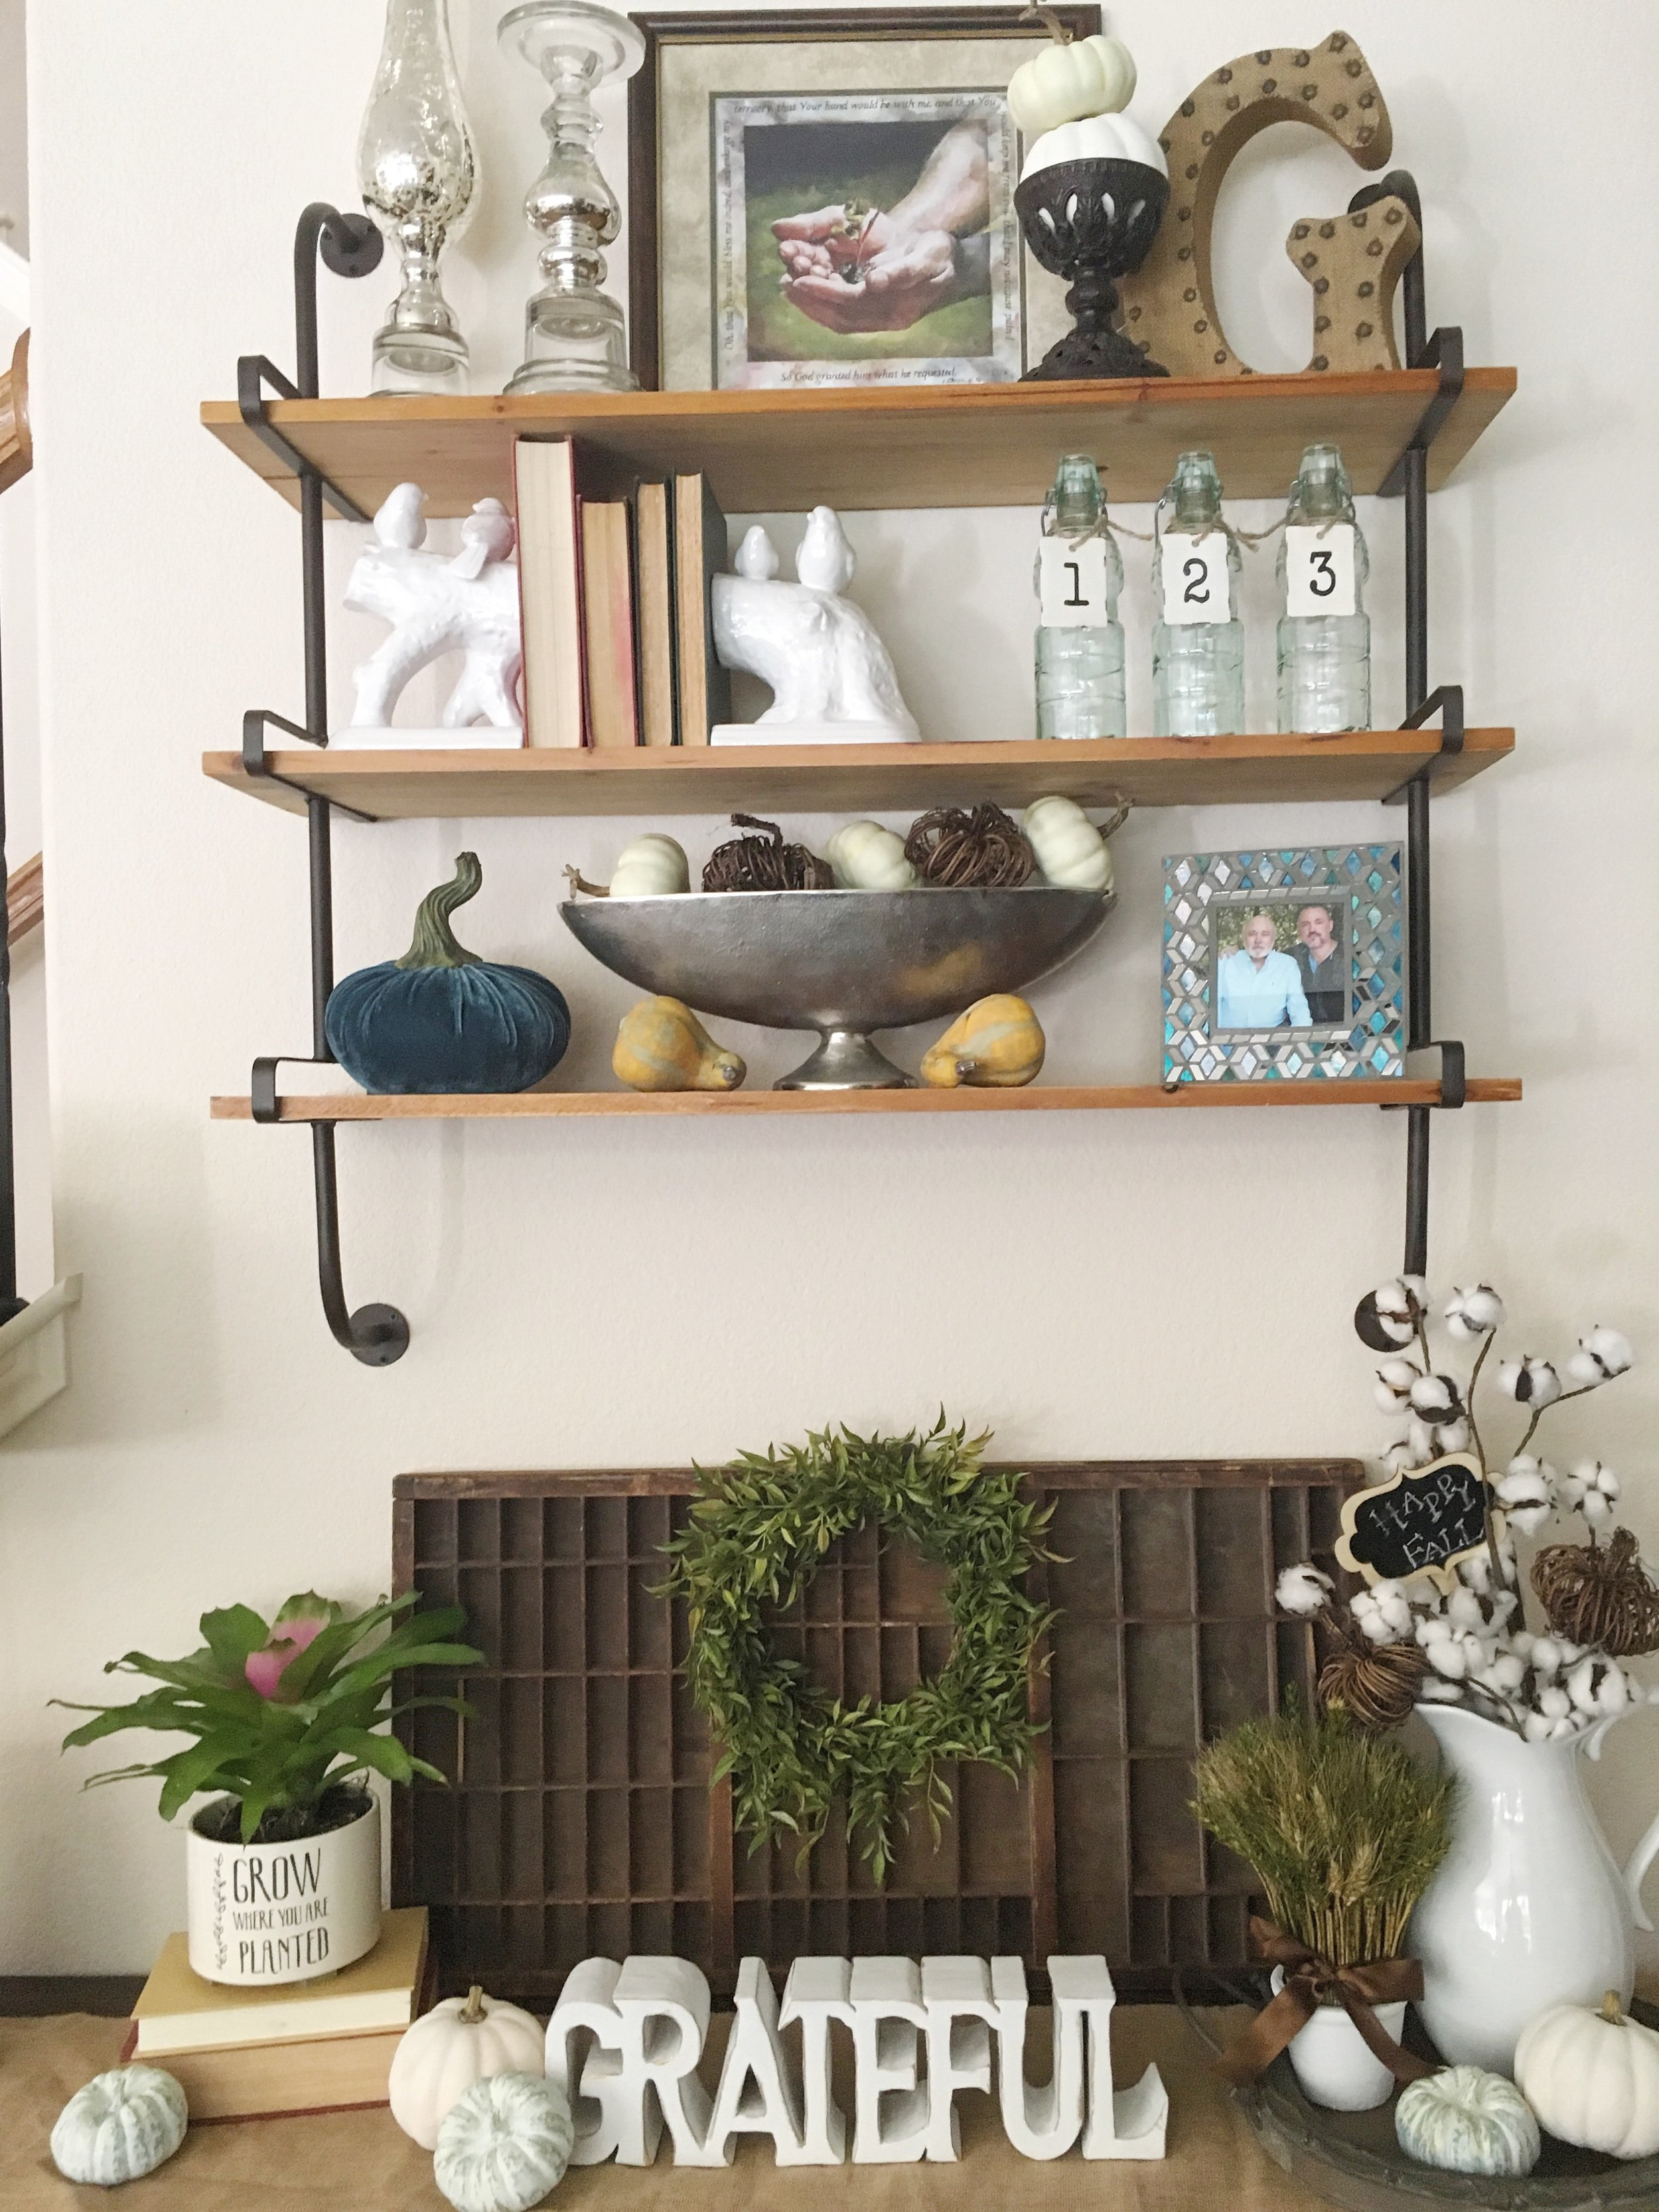 My new shelves that I got from DecorSteals. Couldn't wait to style them using Fall items.